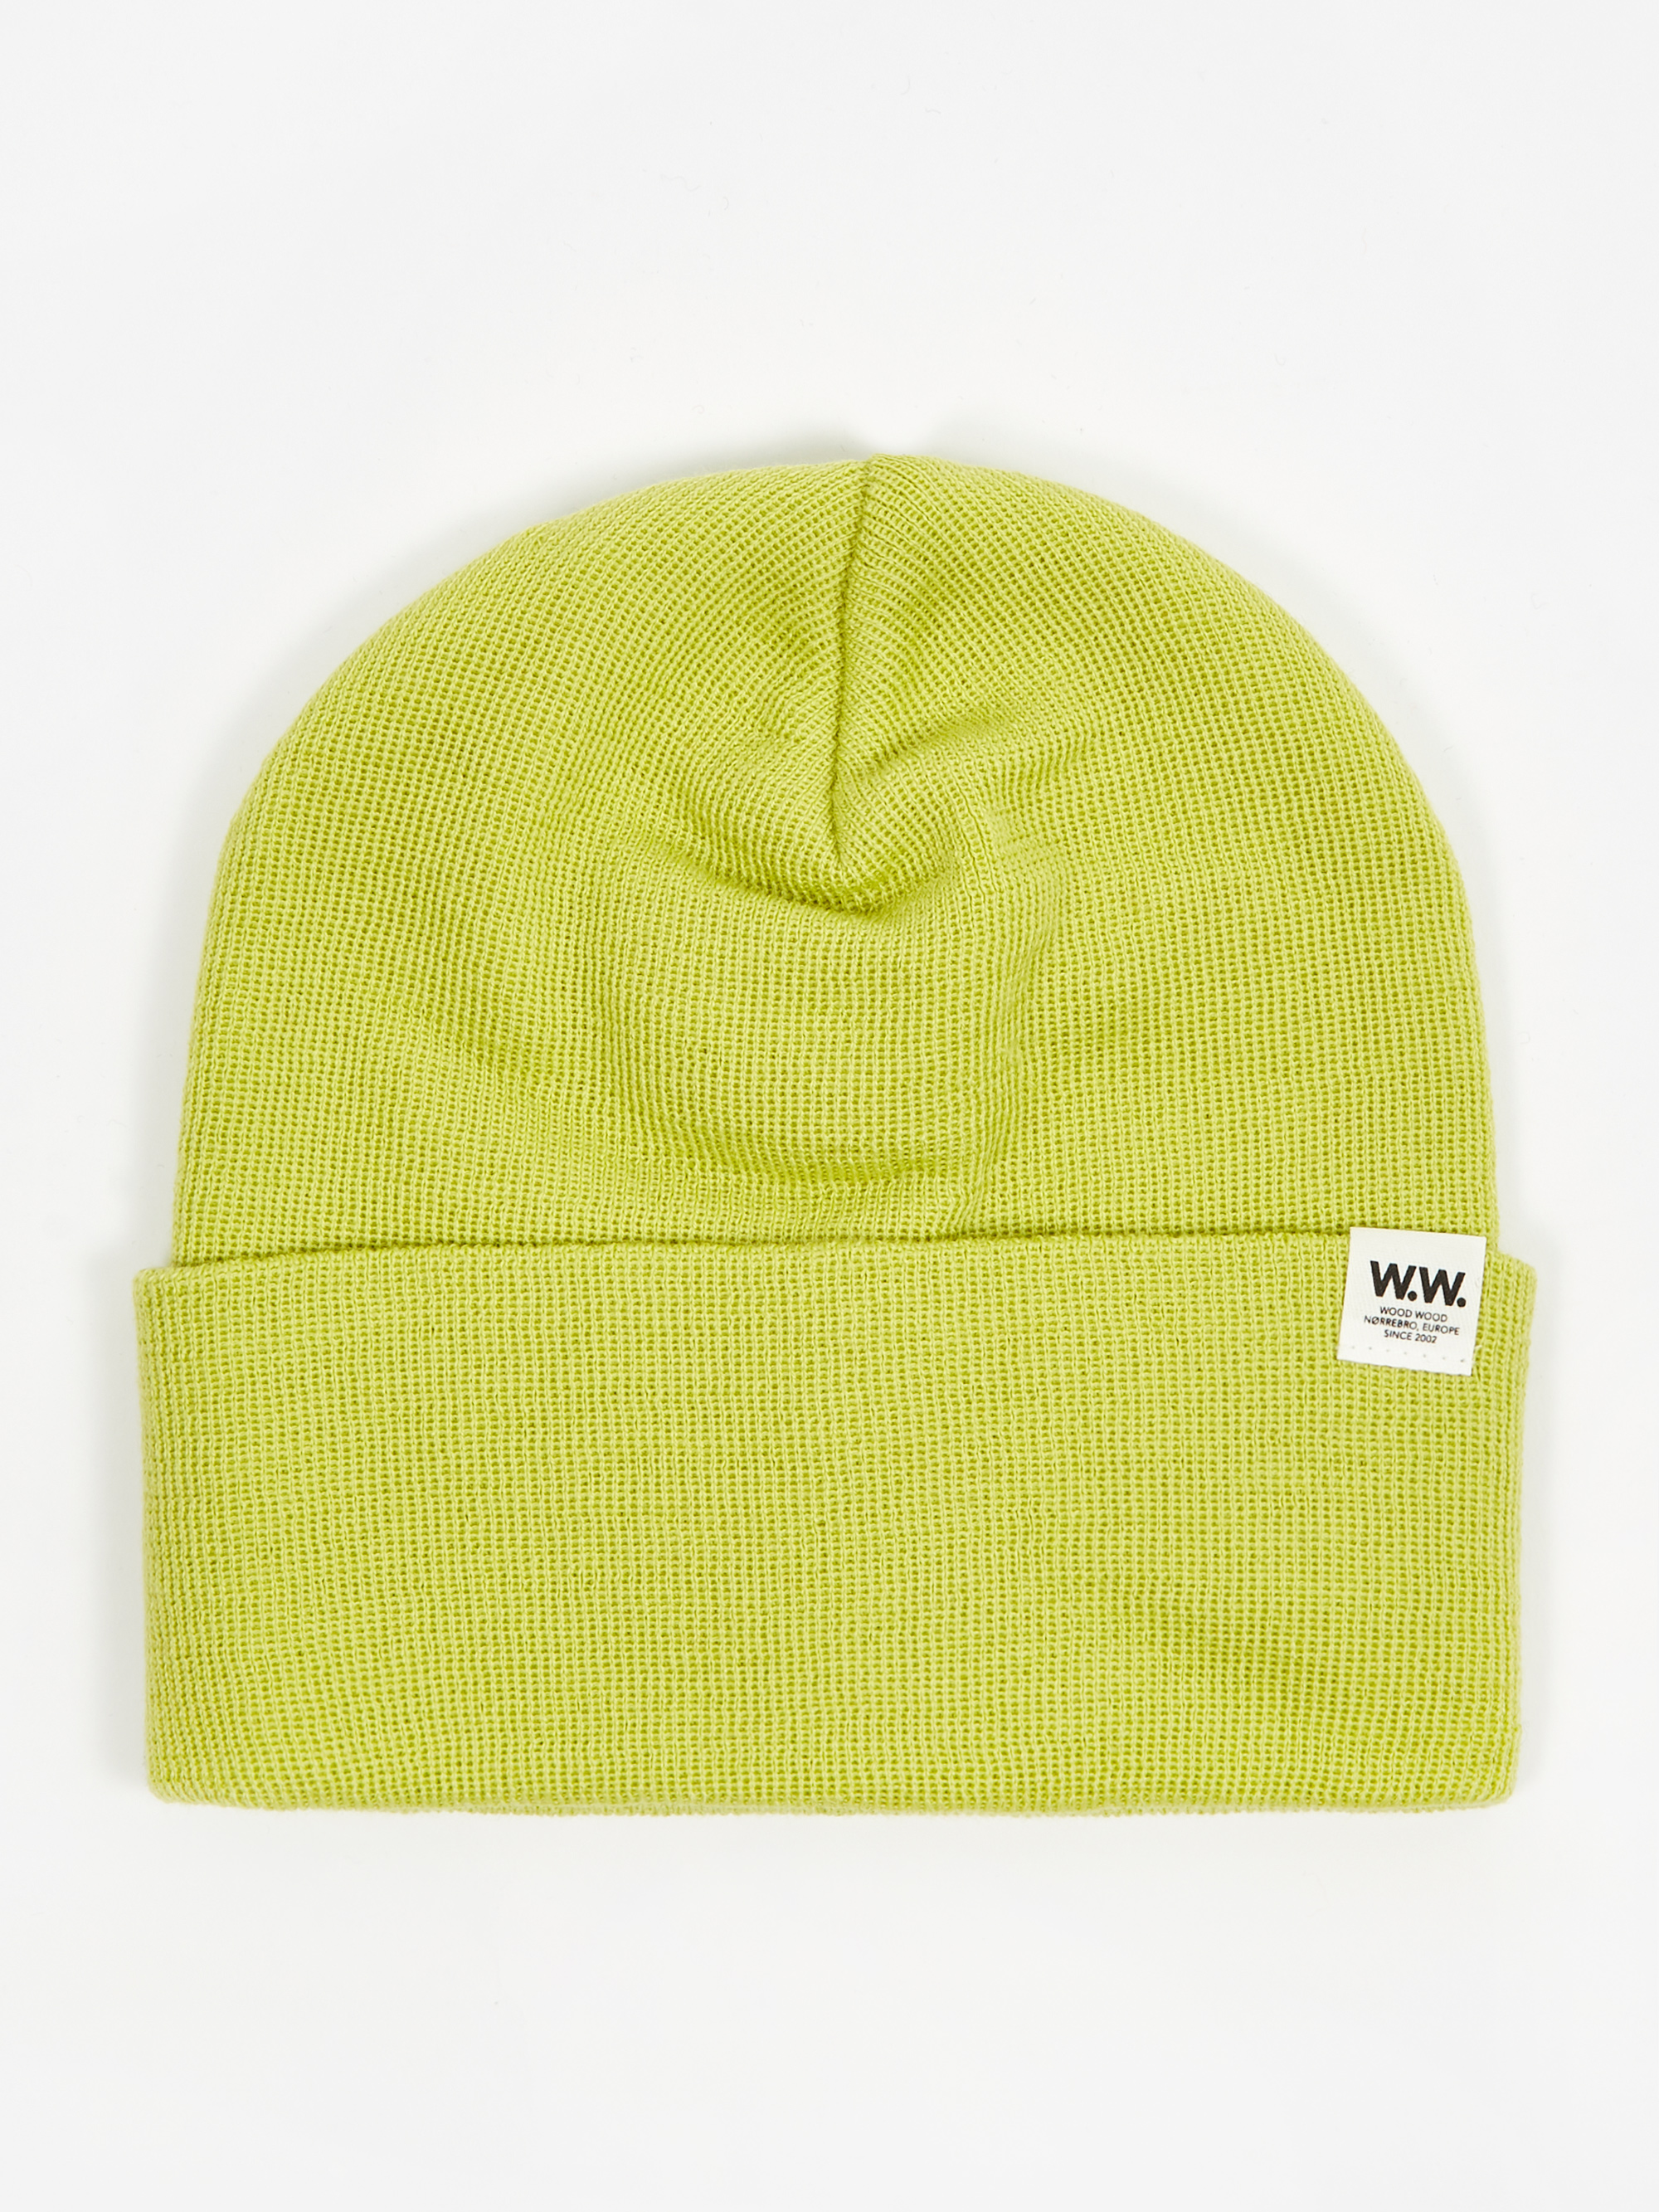 3b74f6a71 Wood Wood Gerald Tall Beanie Hat - Bright Green